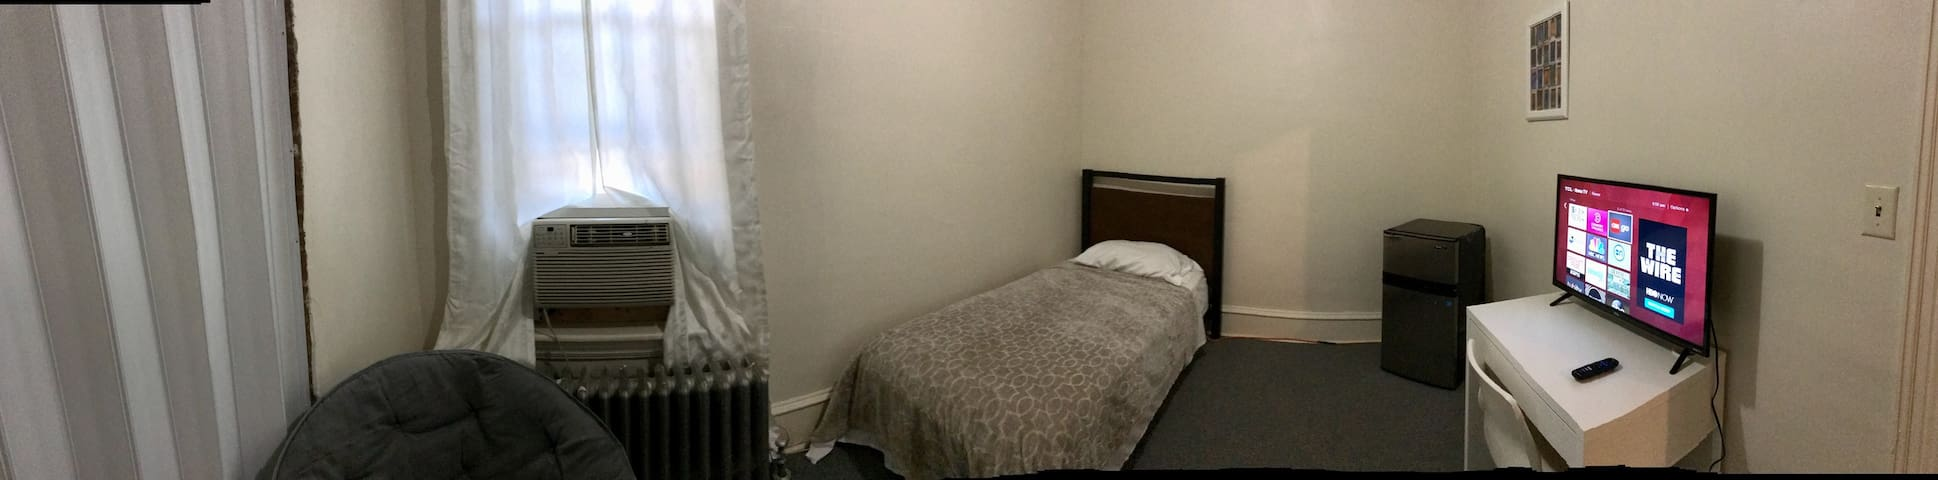 PRIVATE ROOM IN THE HEART OF PHILLY  3B